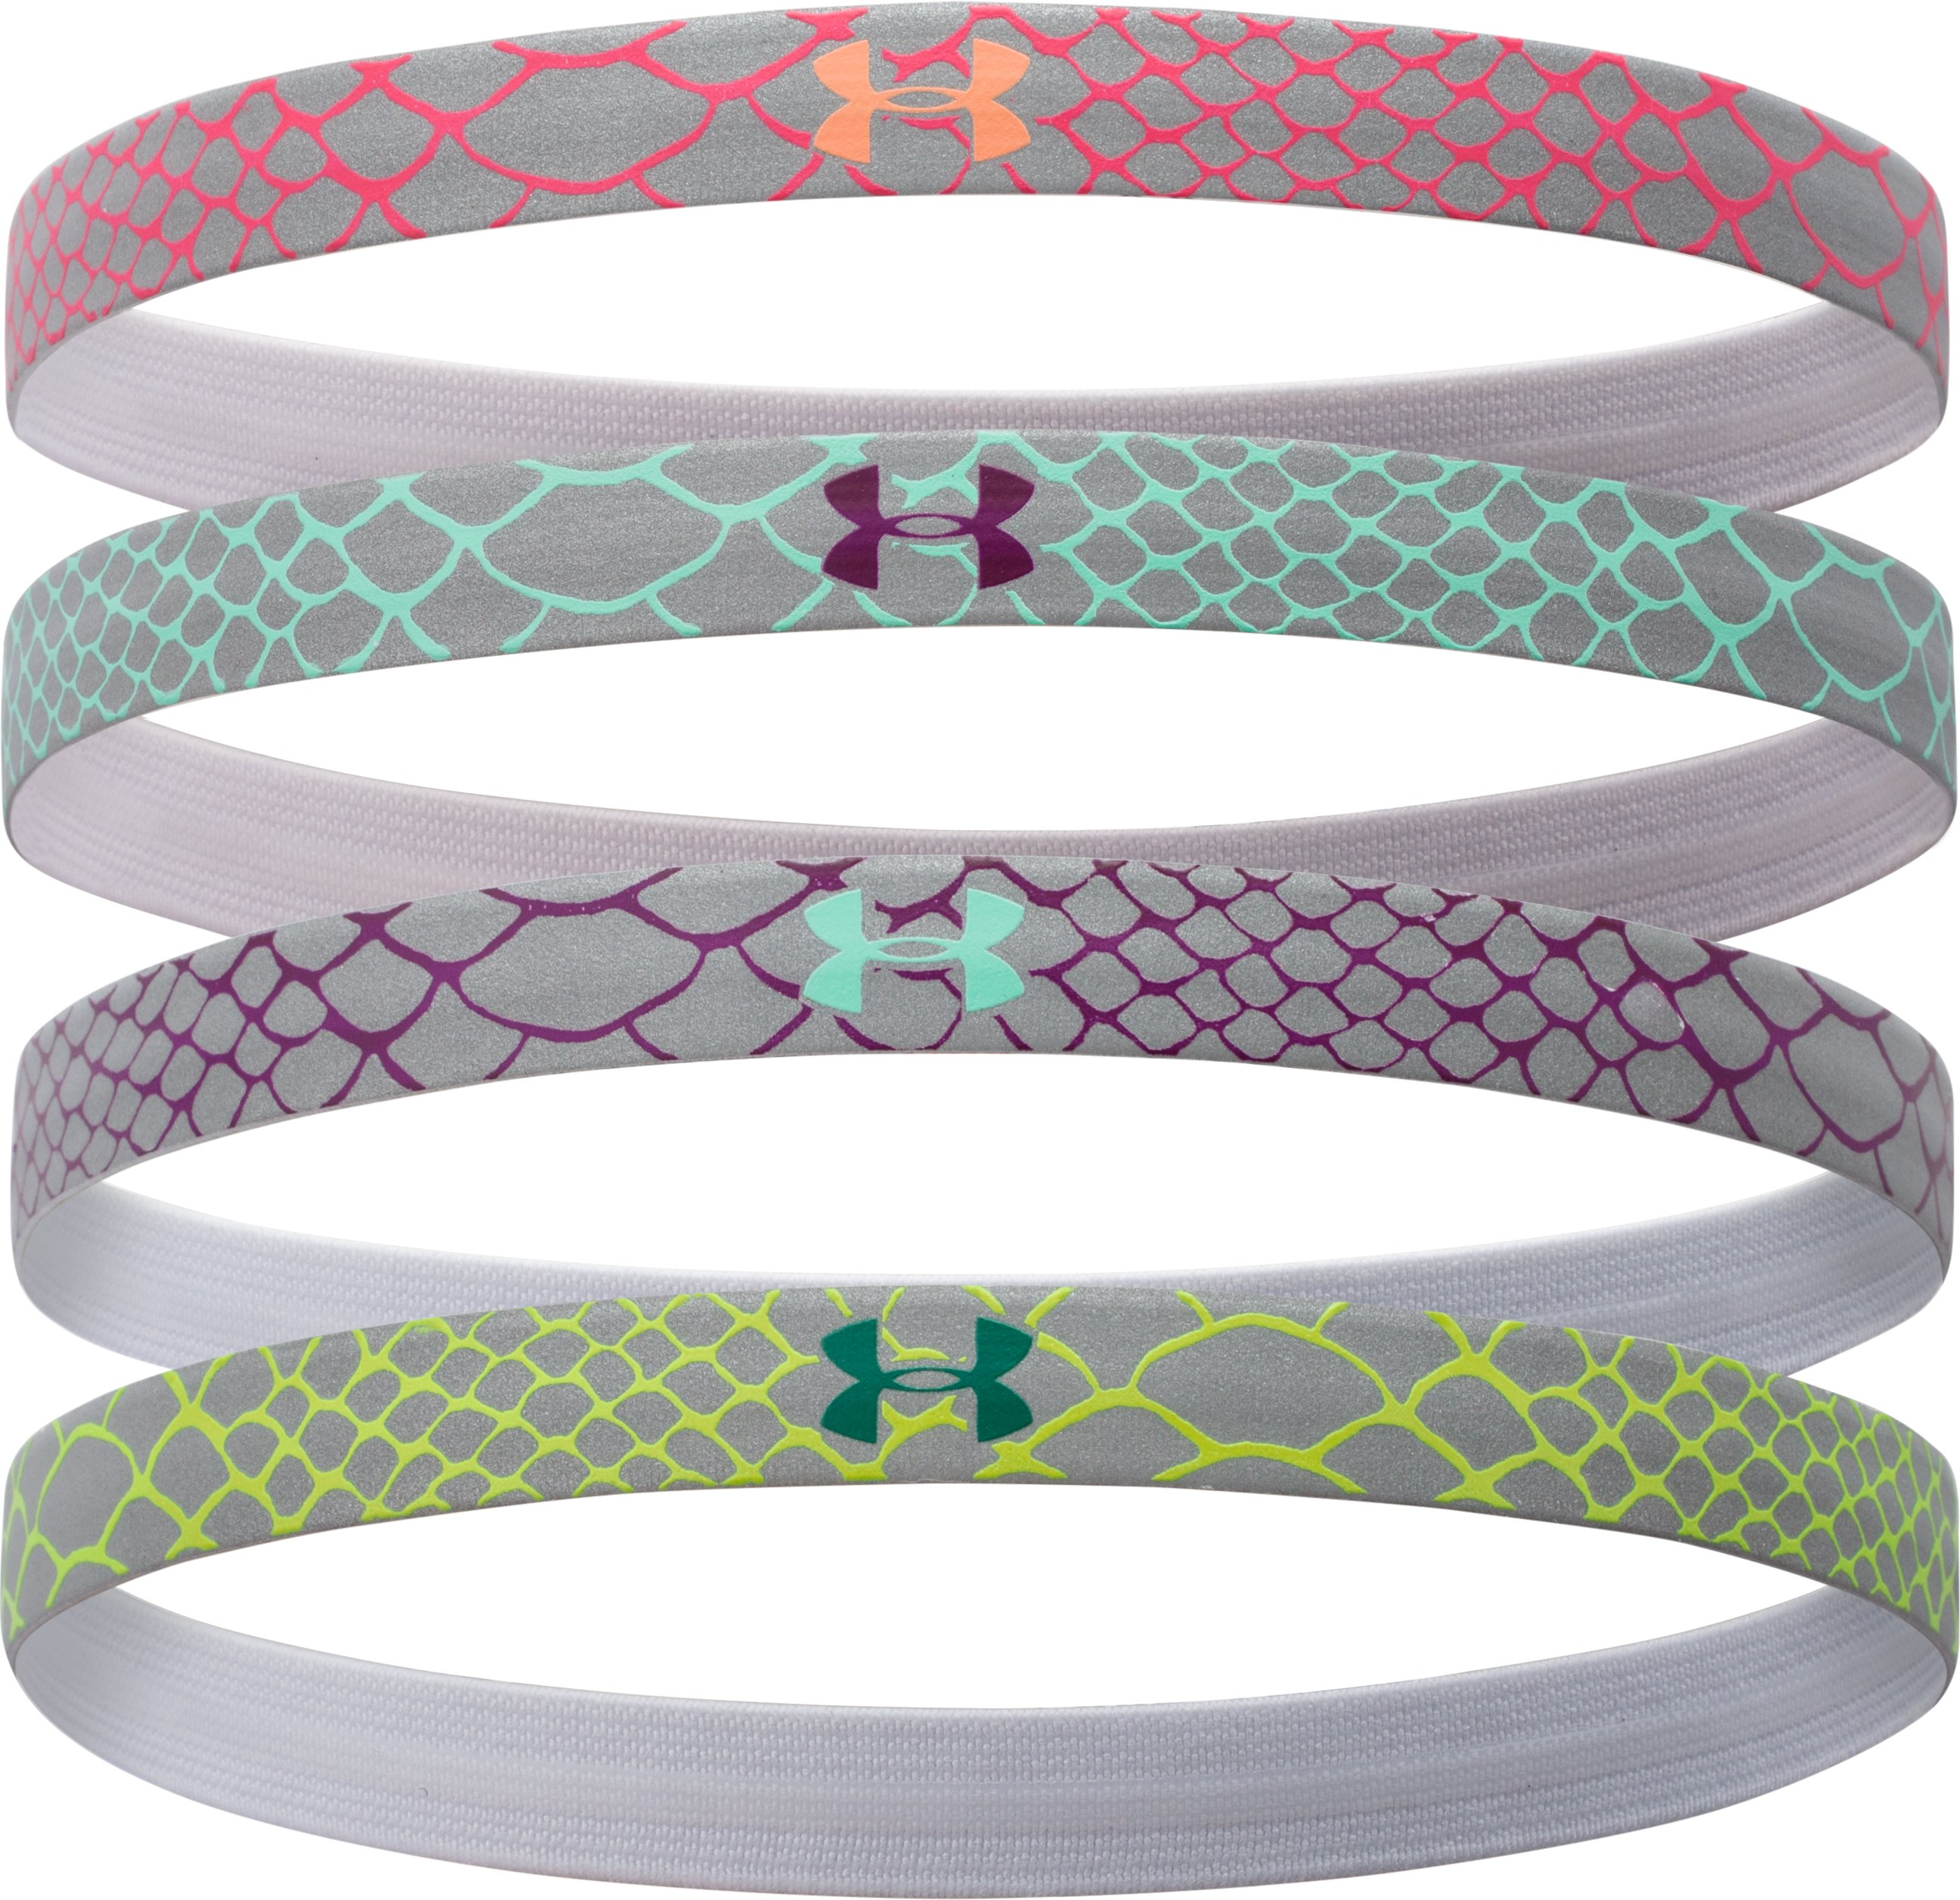 Women's UA Reflective Mini Headband - 4pk, Aubergine,